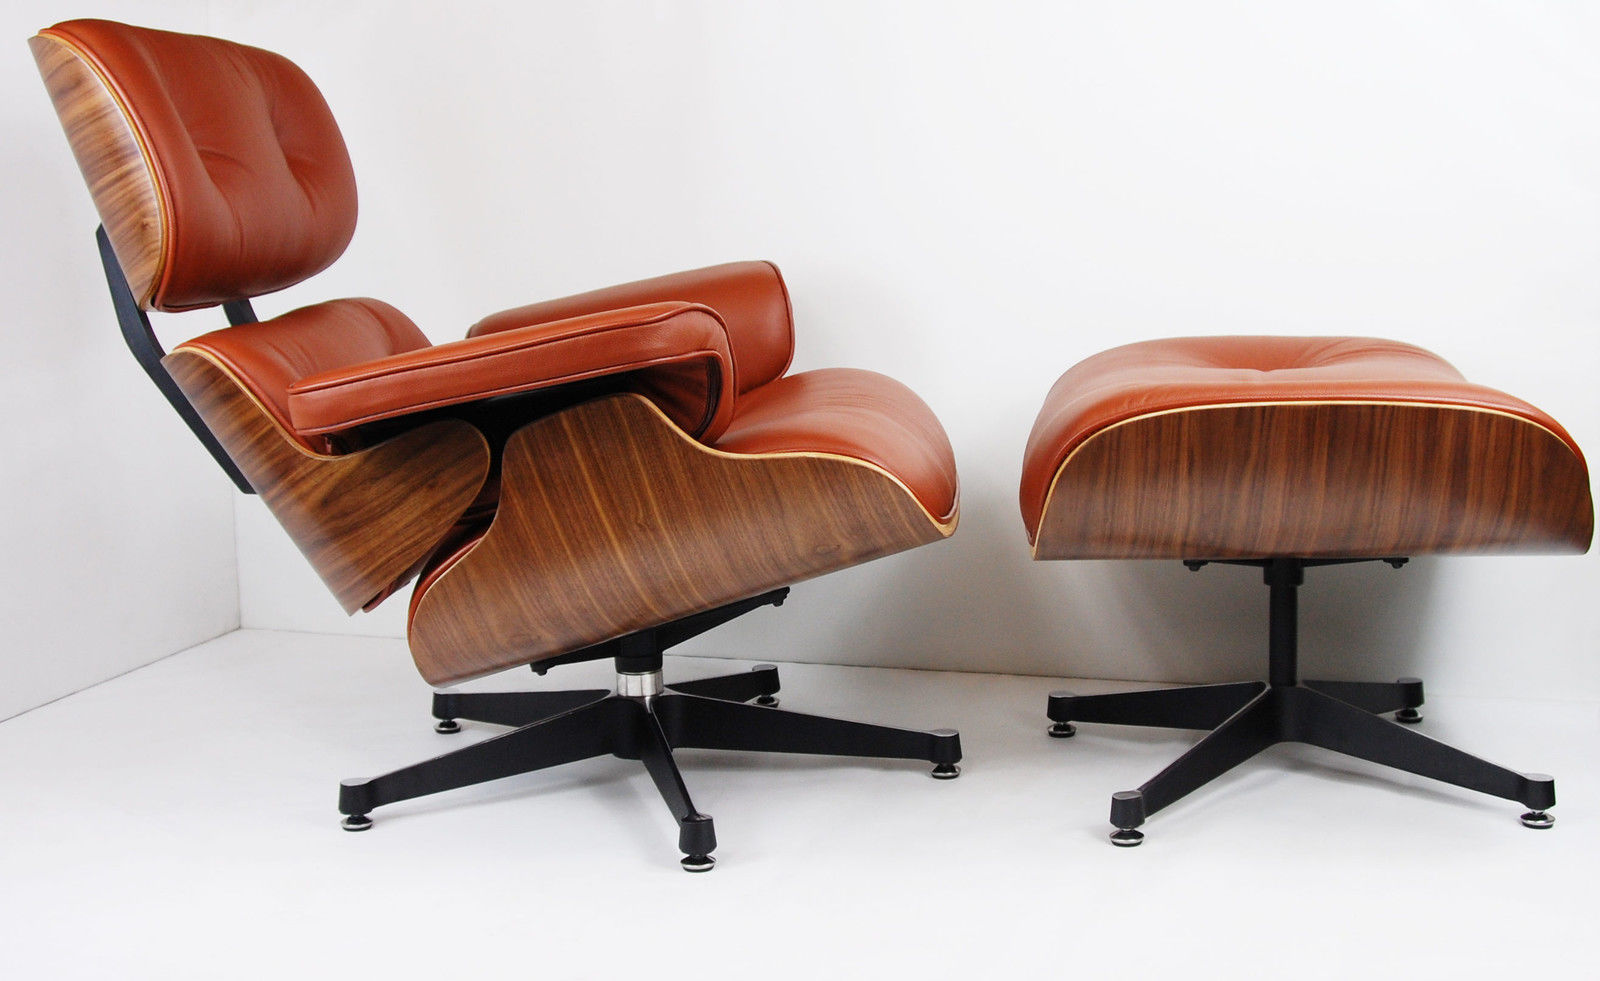 Charles Eames Chair Walnut Brown Tan Leather 2 Charles Eames